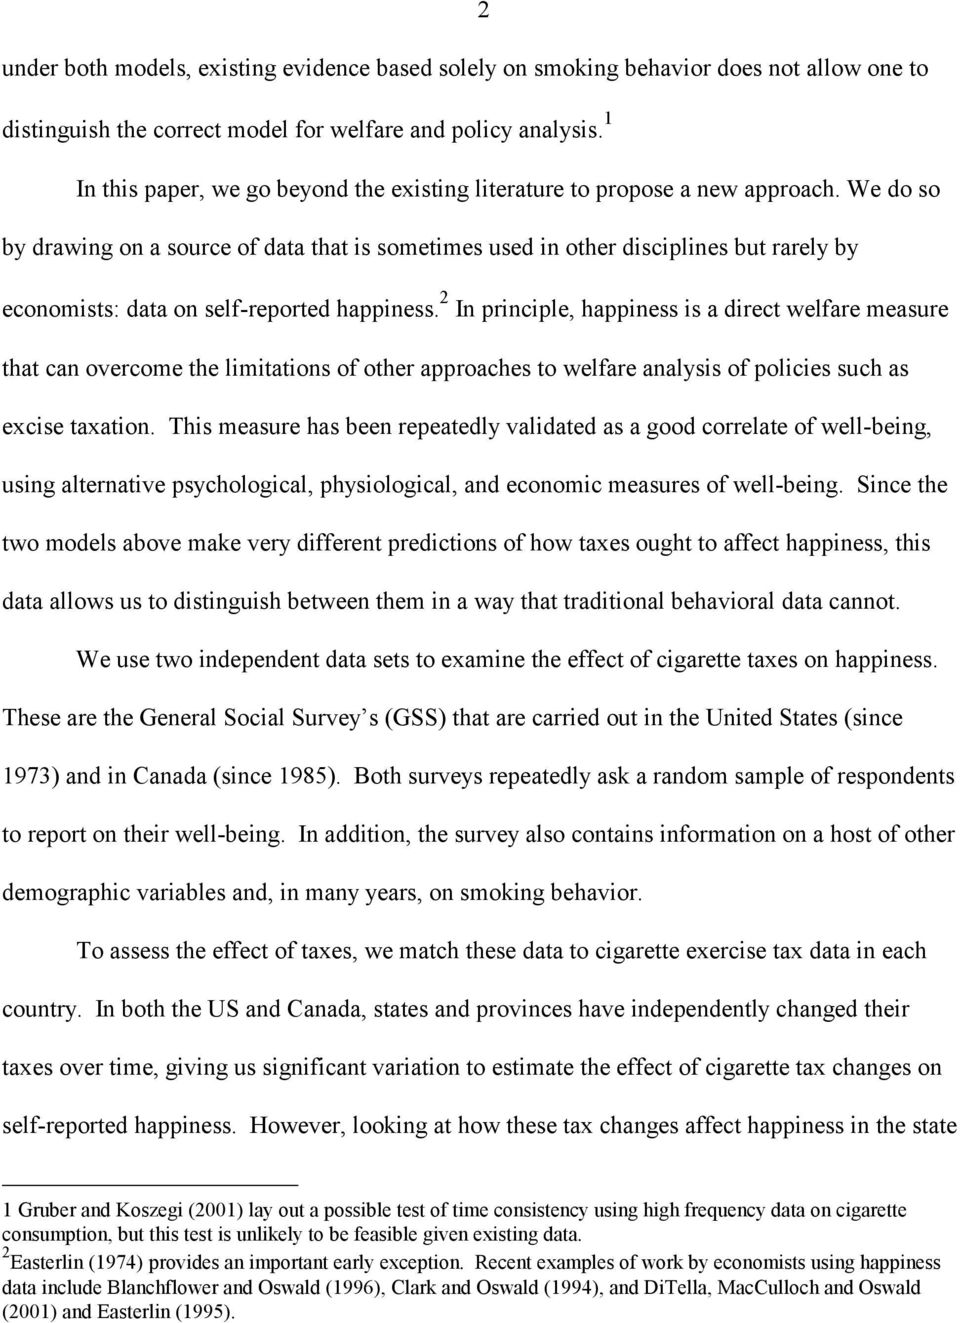 We do so by drawing on a source of data that is sometimes used in other disciplines but rarely by economists: data on self-reported happiness.